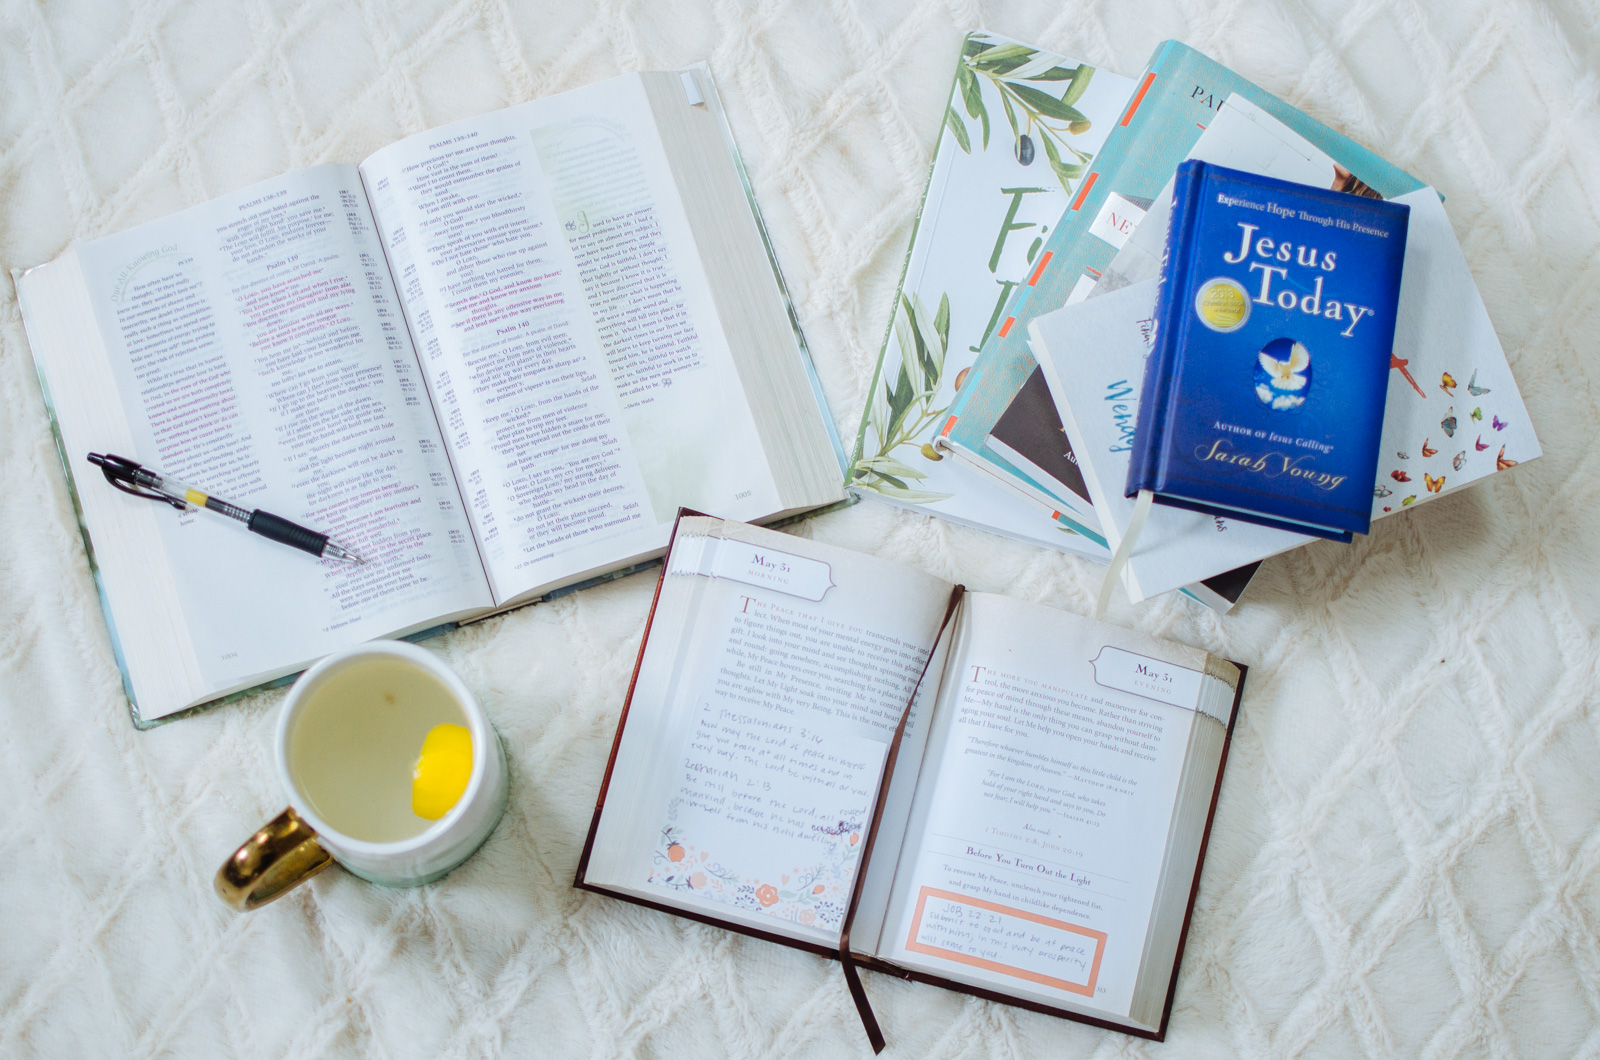 top five must read devotionals for women   Come see all the best encouraging daily devotionals. They are life-changing! bylaurenm.com